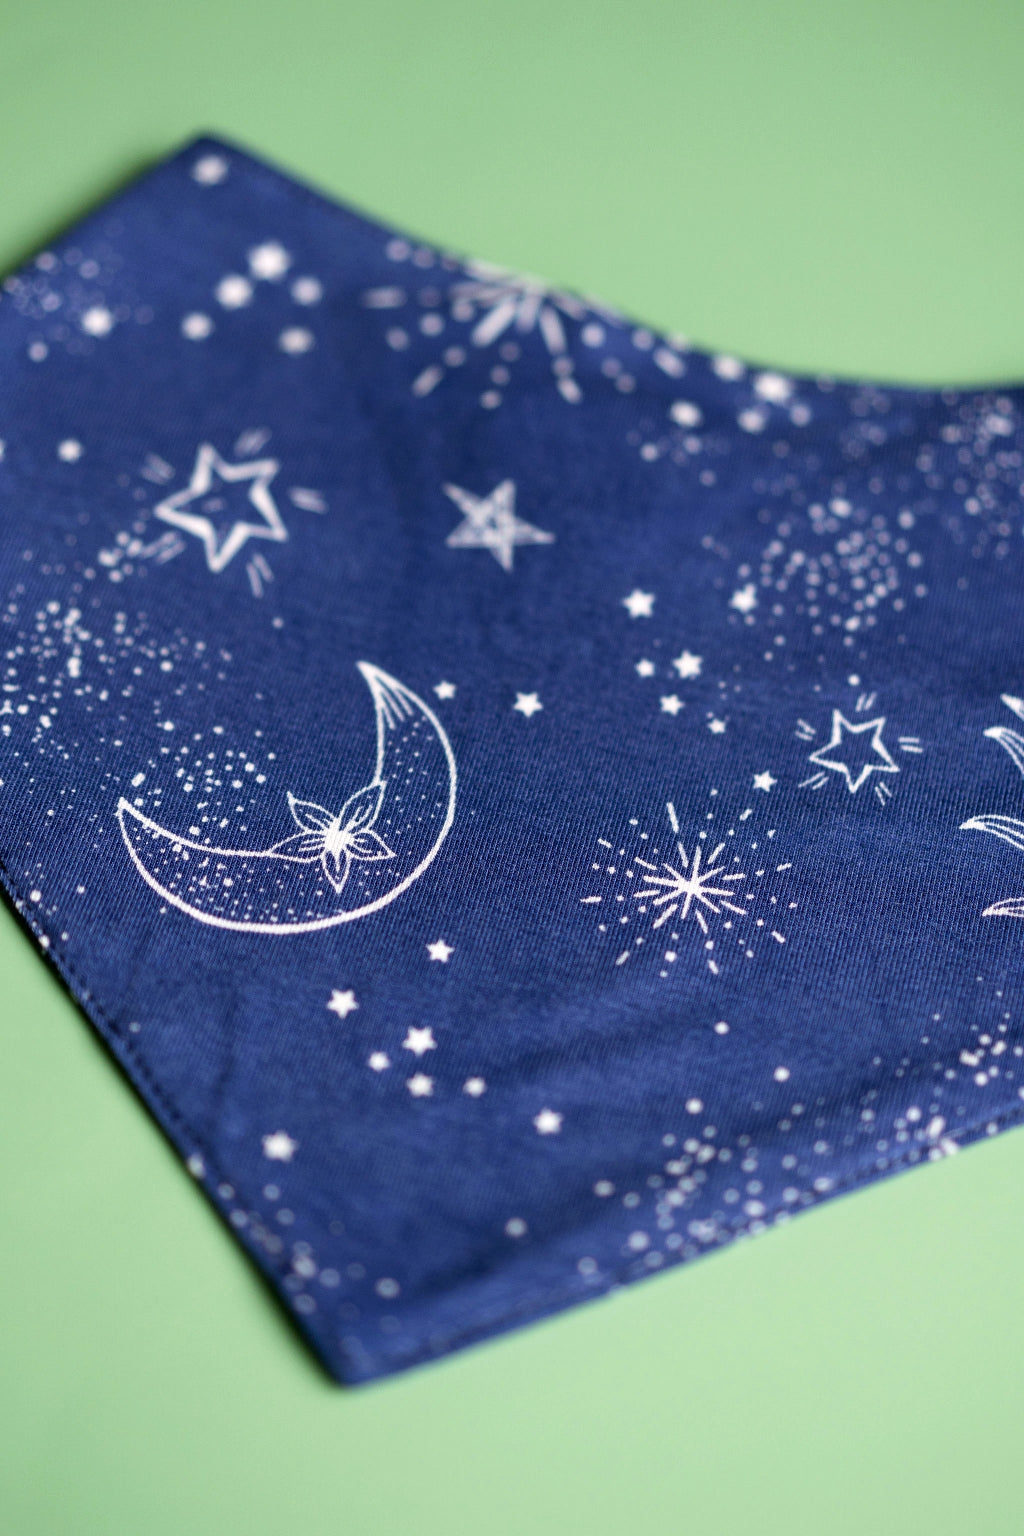 Constellation & Stars Drool Bib